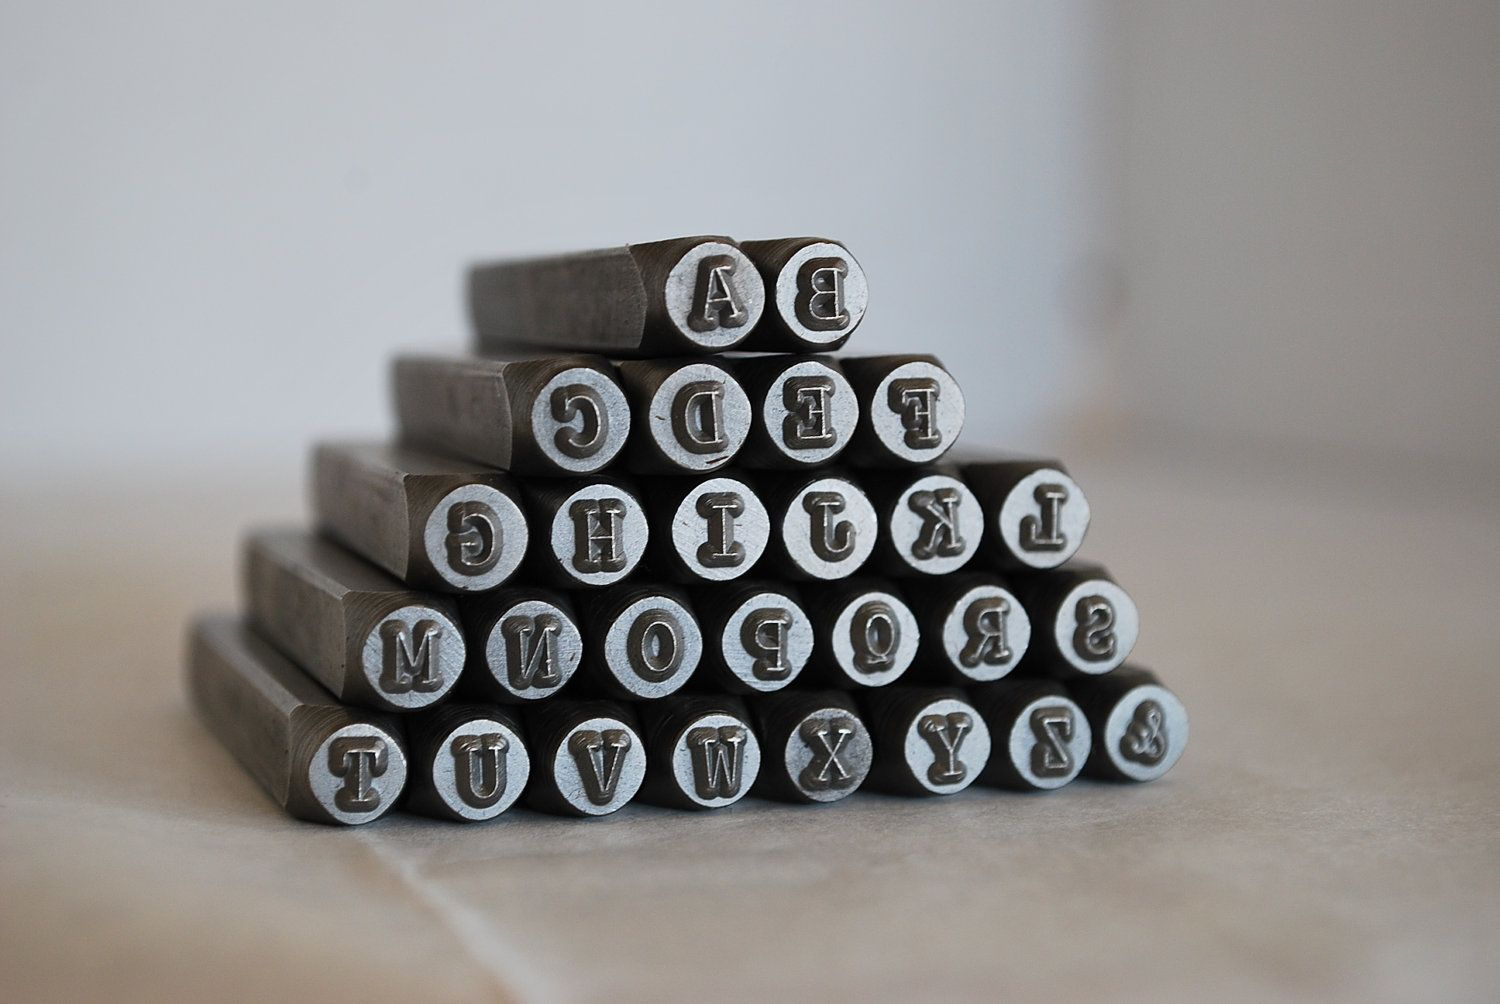 3 mm uppercase typewriter font alphabet letter stamp set metal stamps jewelry stamping supplies